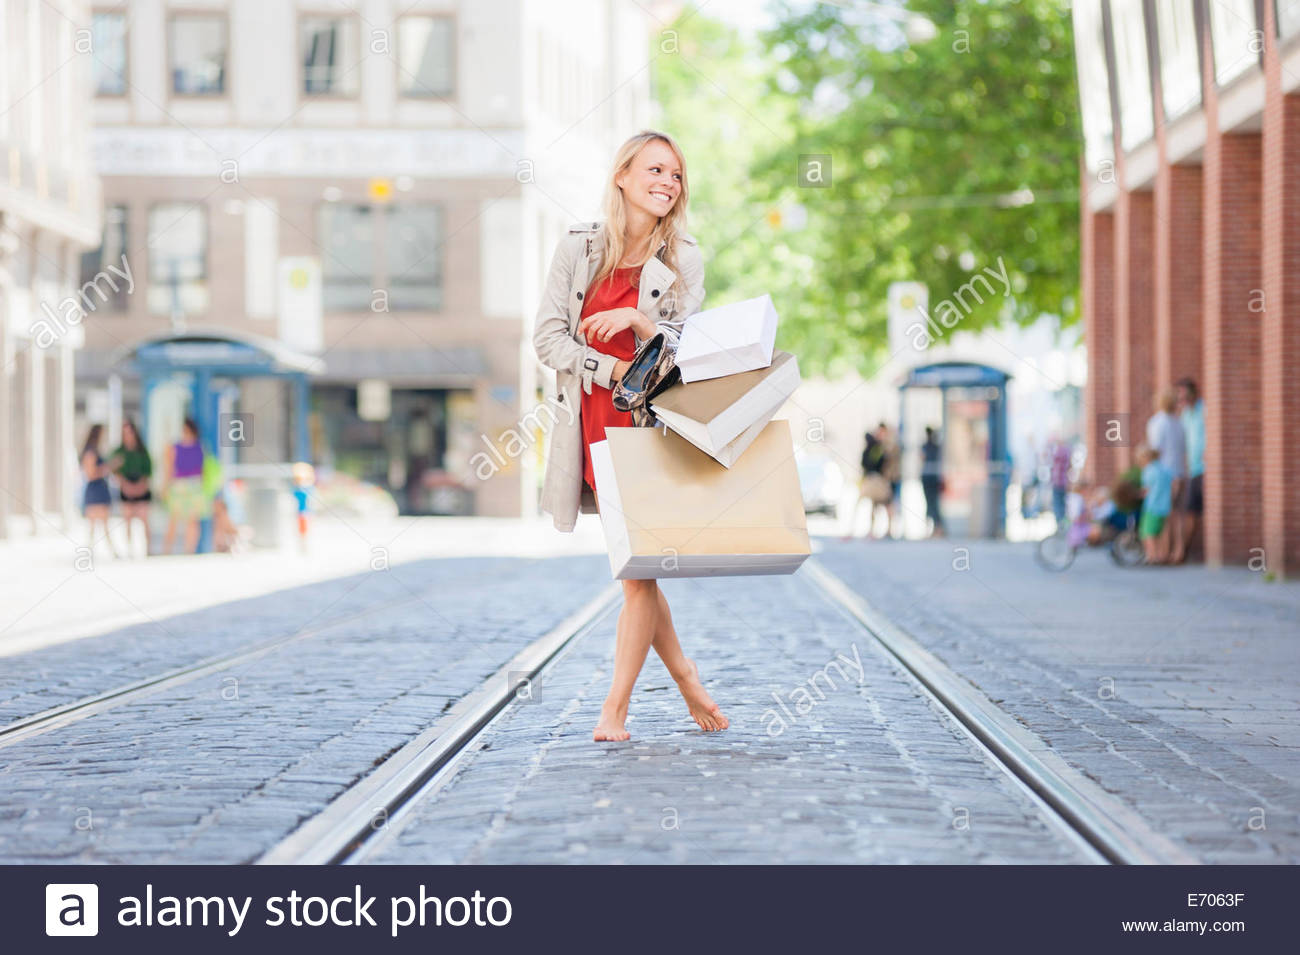 Young woman carrying shopping bags on city street - Stock Image